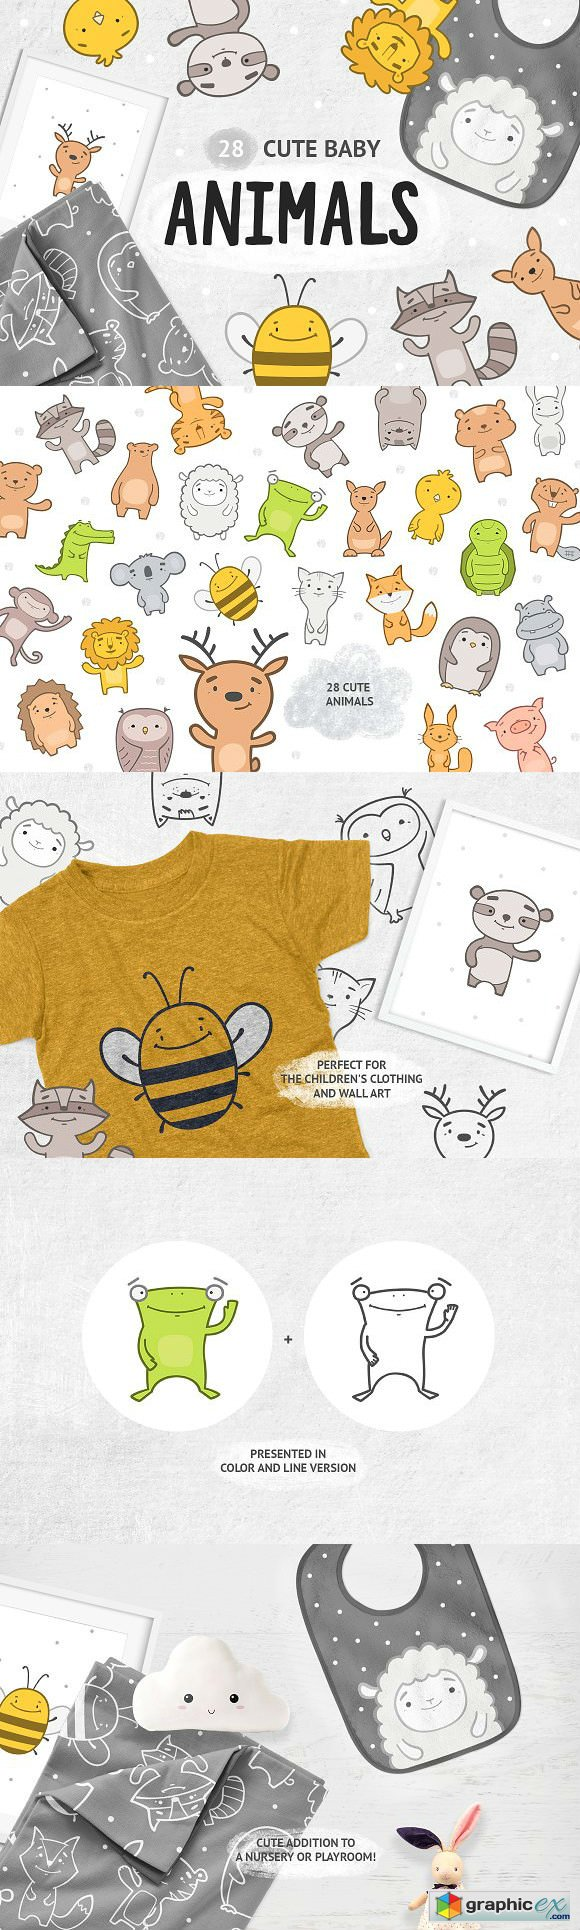 Cute baby animals clipart